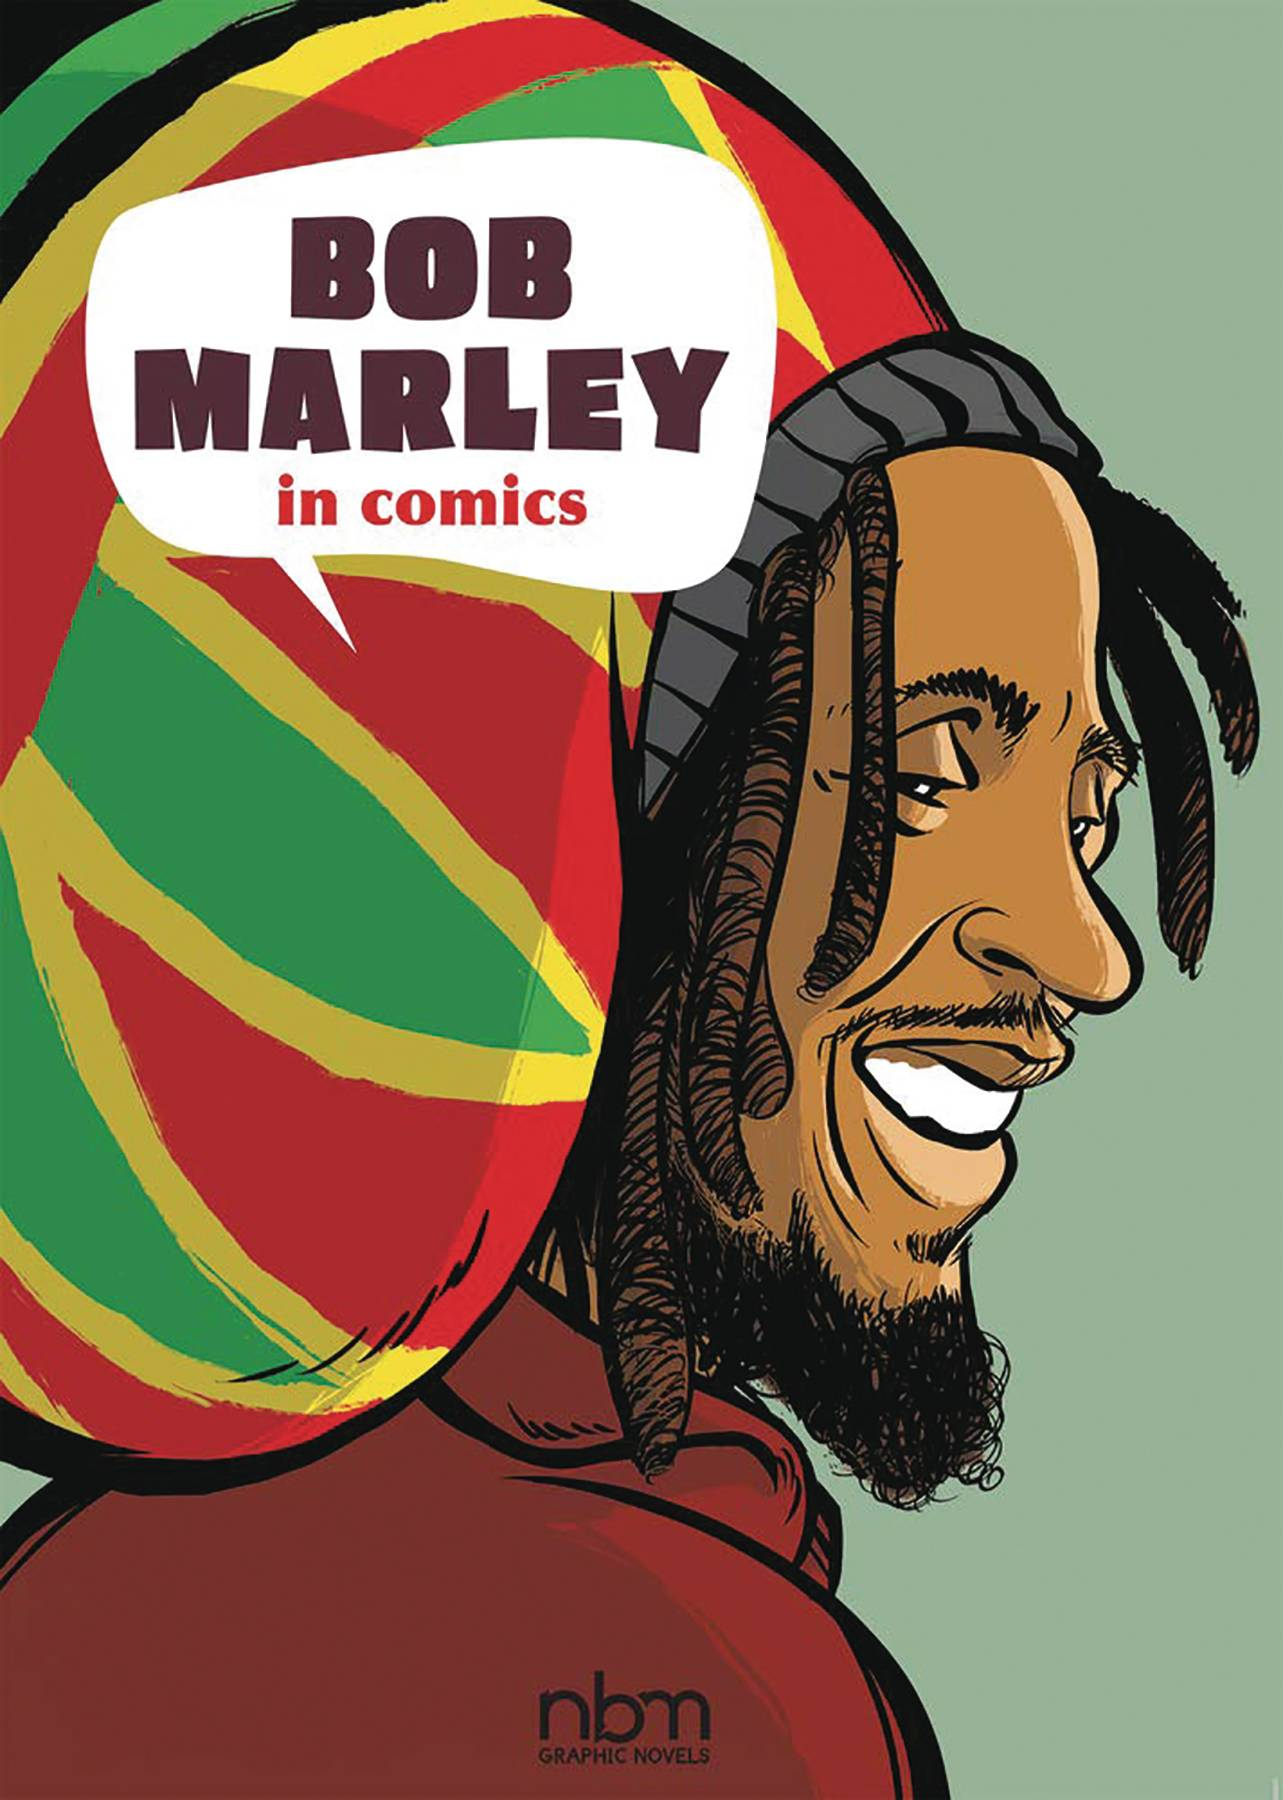 Graphic Novels for Winter 2020: Bob Marley In Comics!